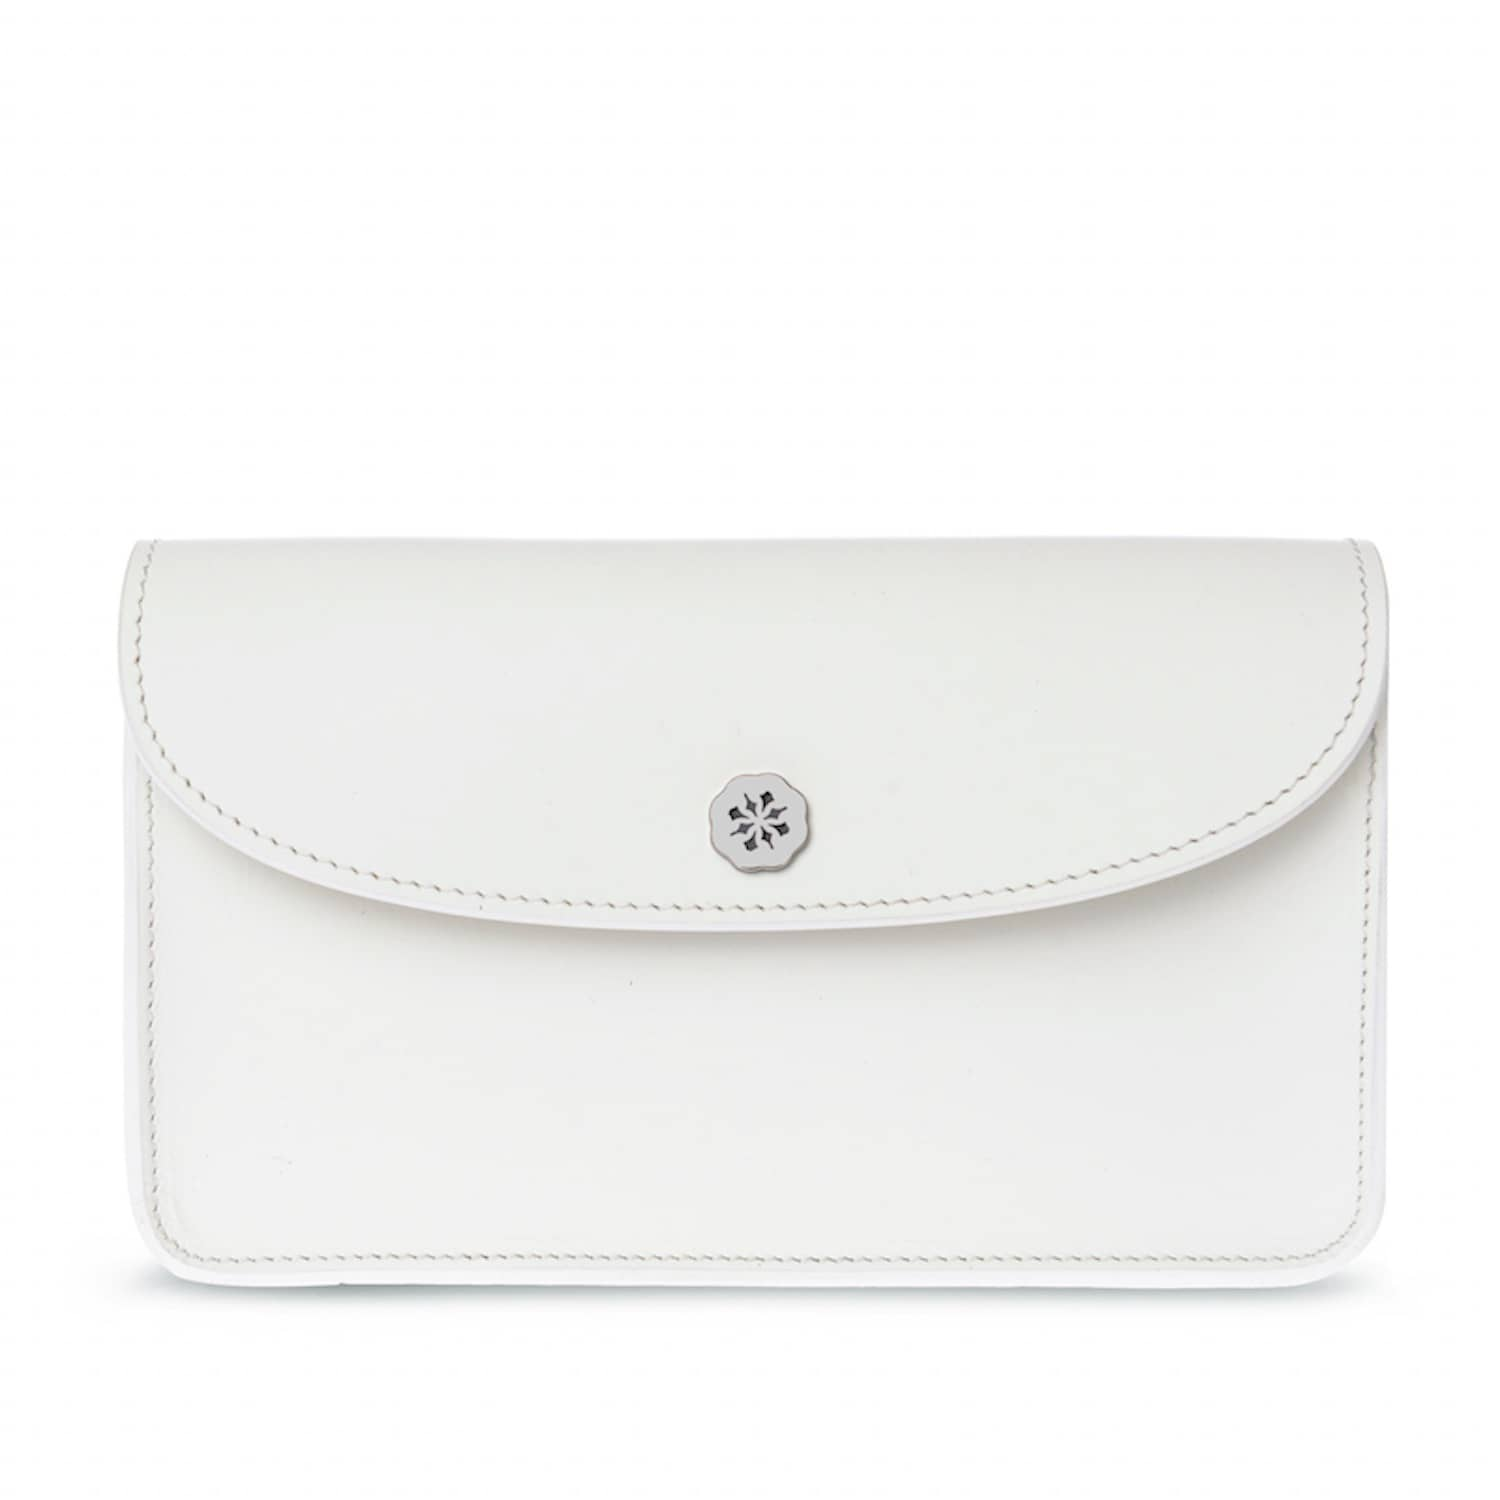 22e393a19 Kate Leather Clutch Bag White | C.Nicol | Wolf & Badger